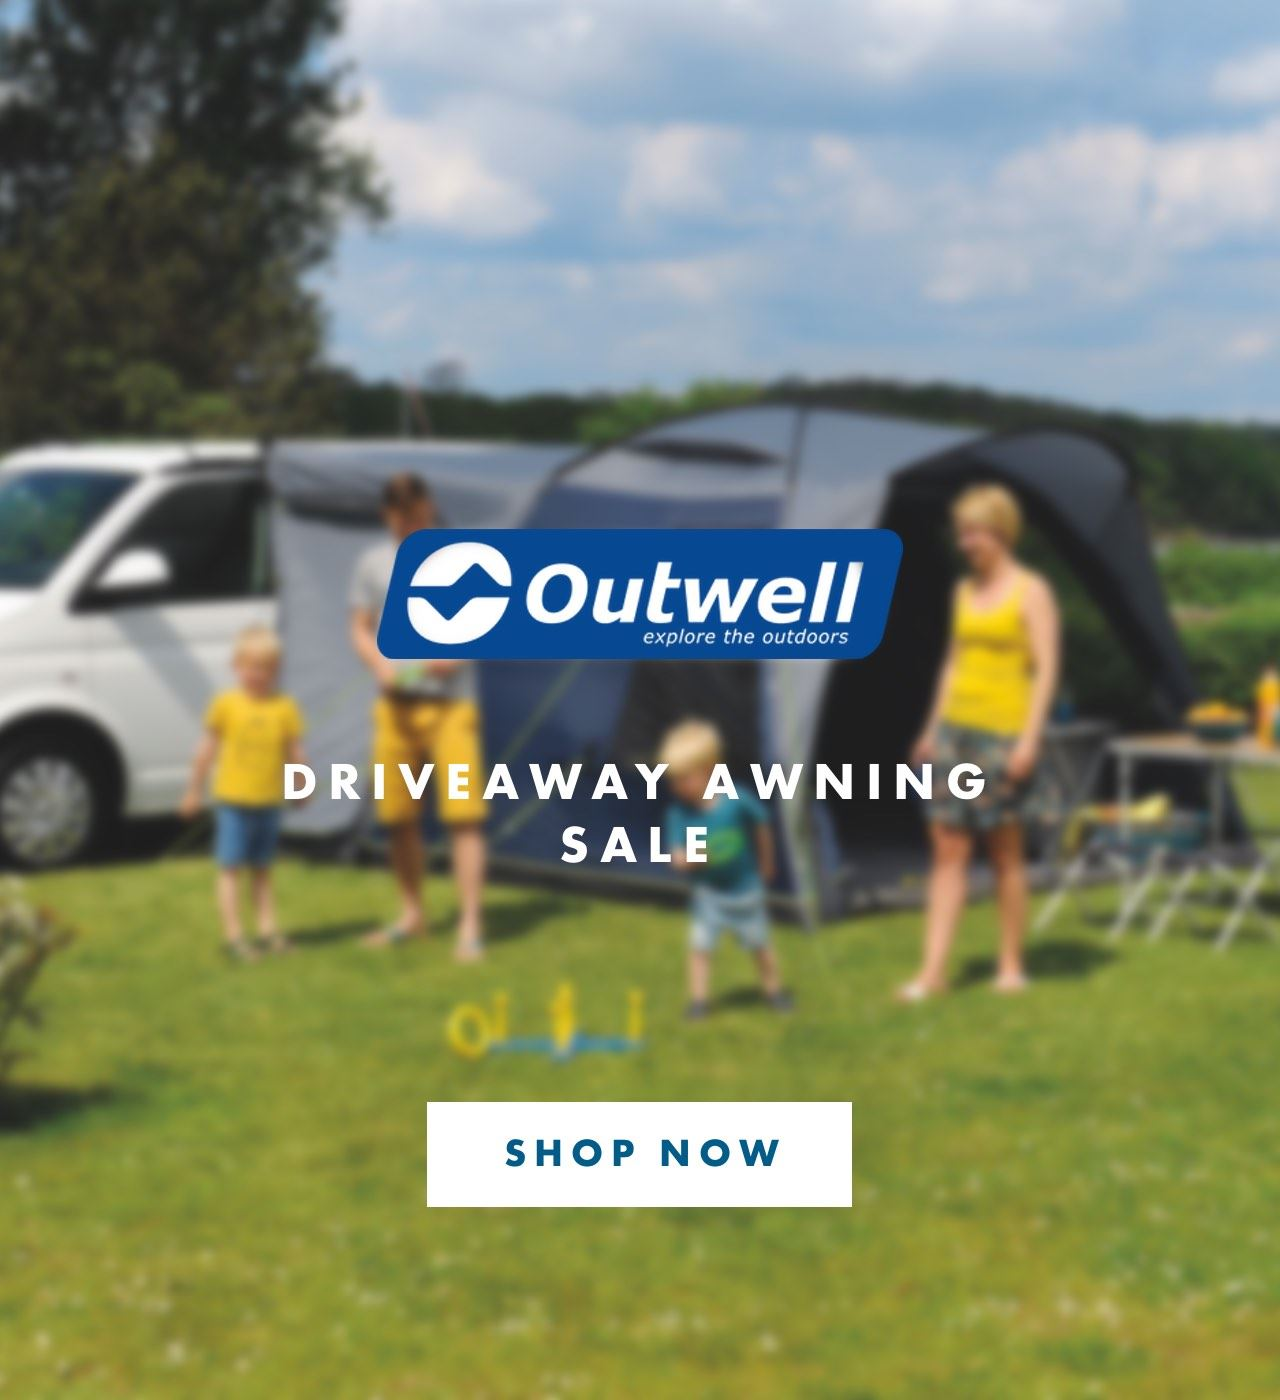 Outwell Driveaway Awning Sale - Shop Now